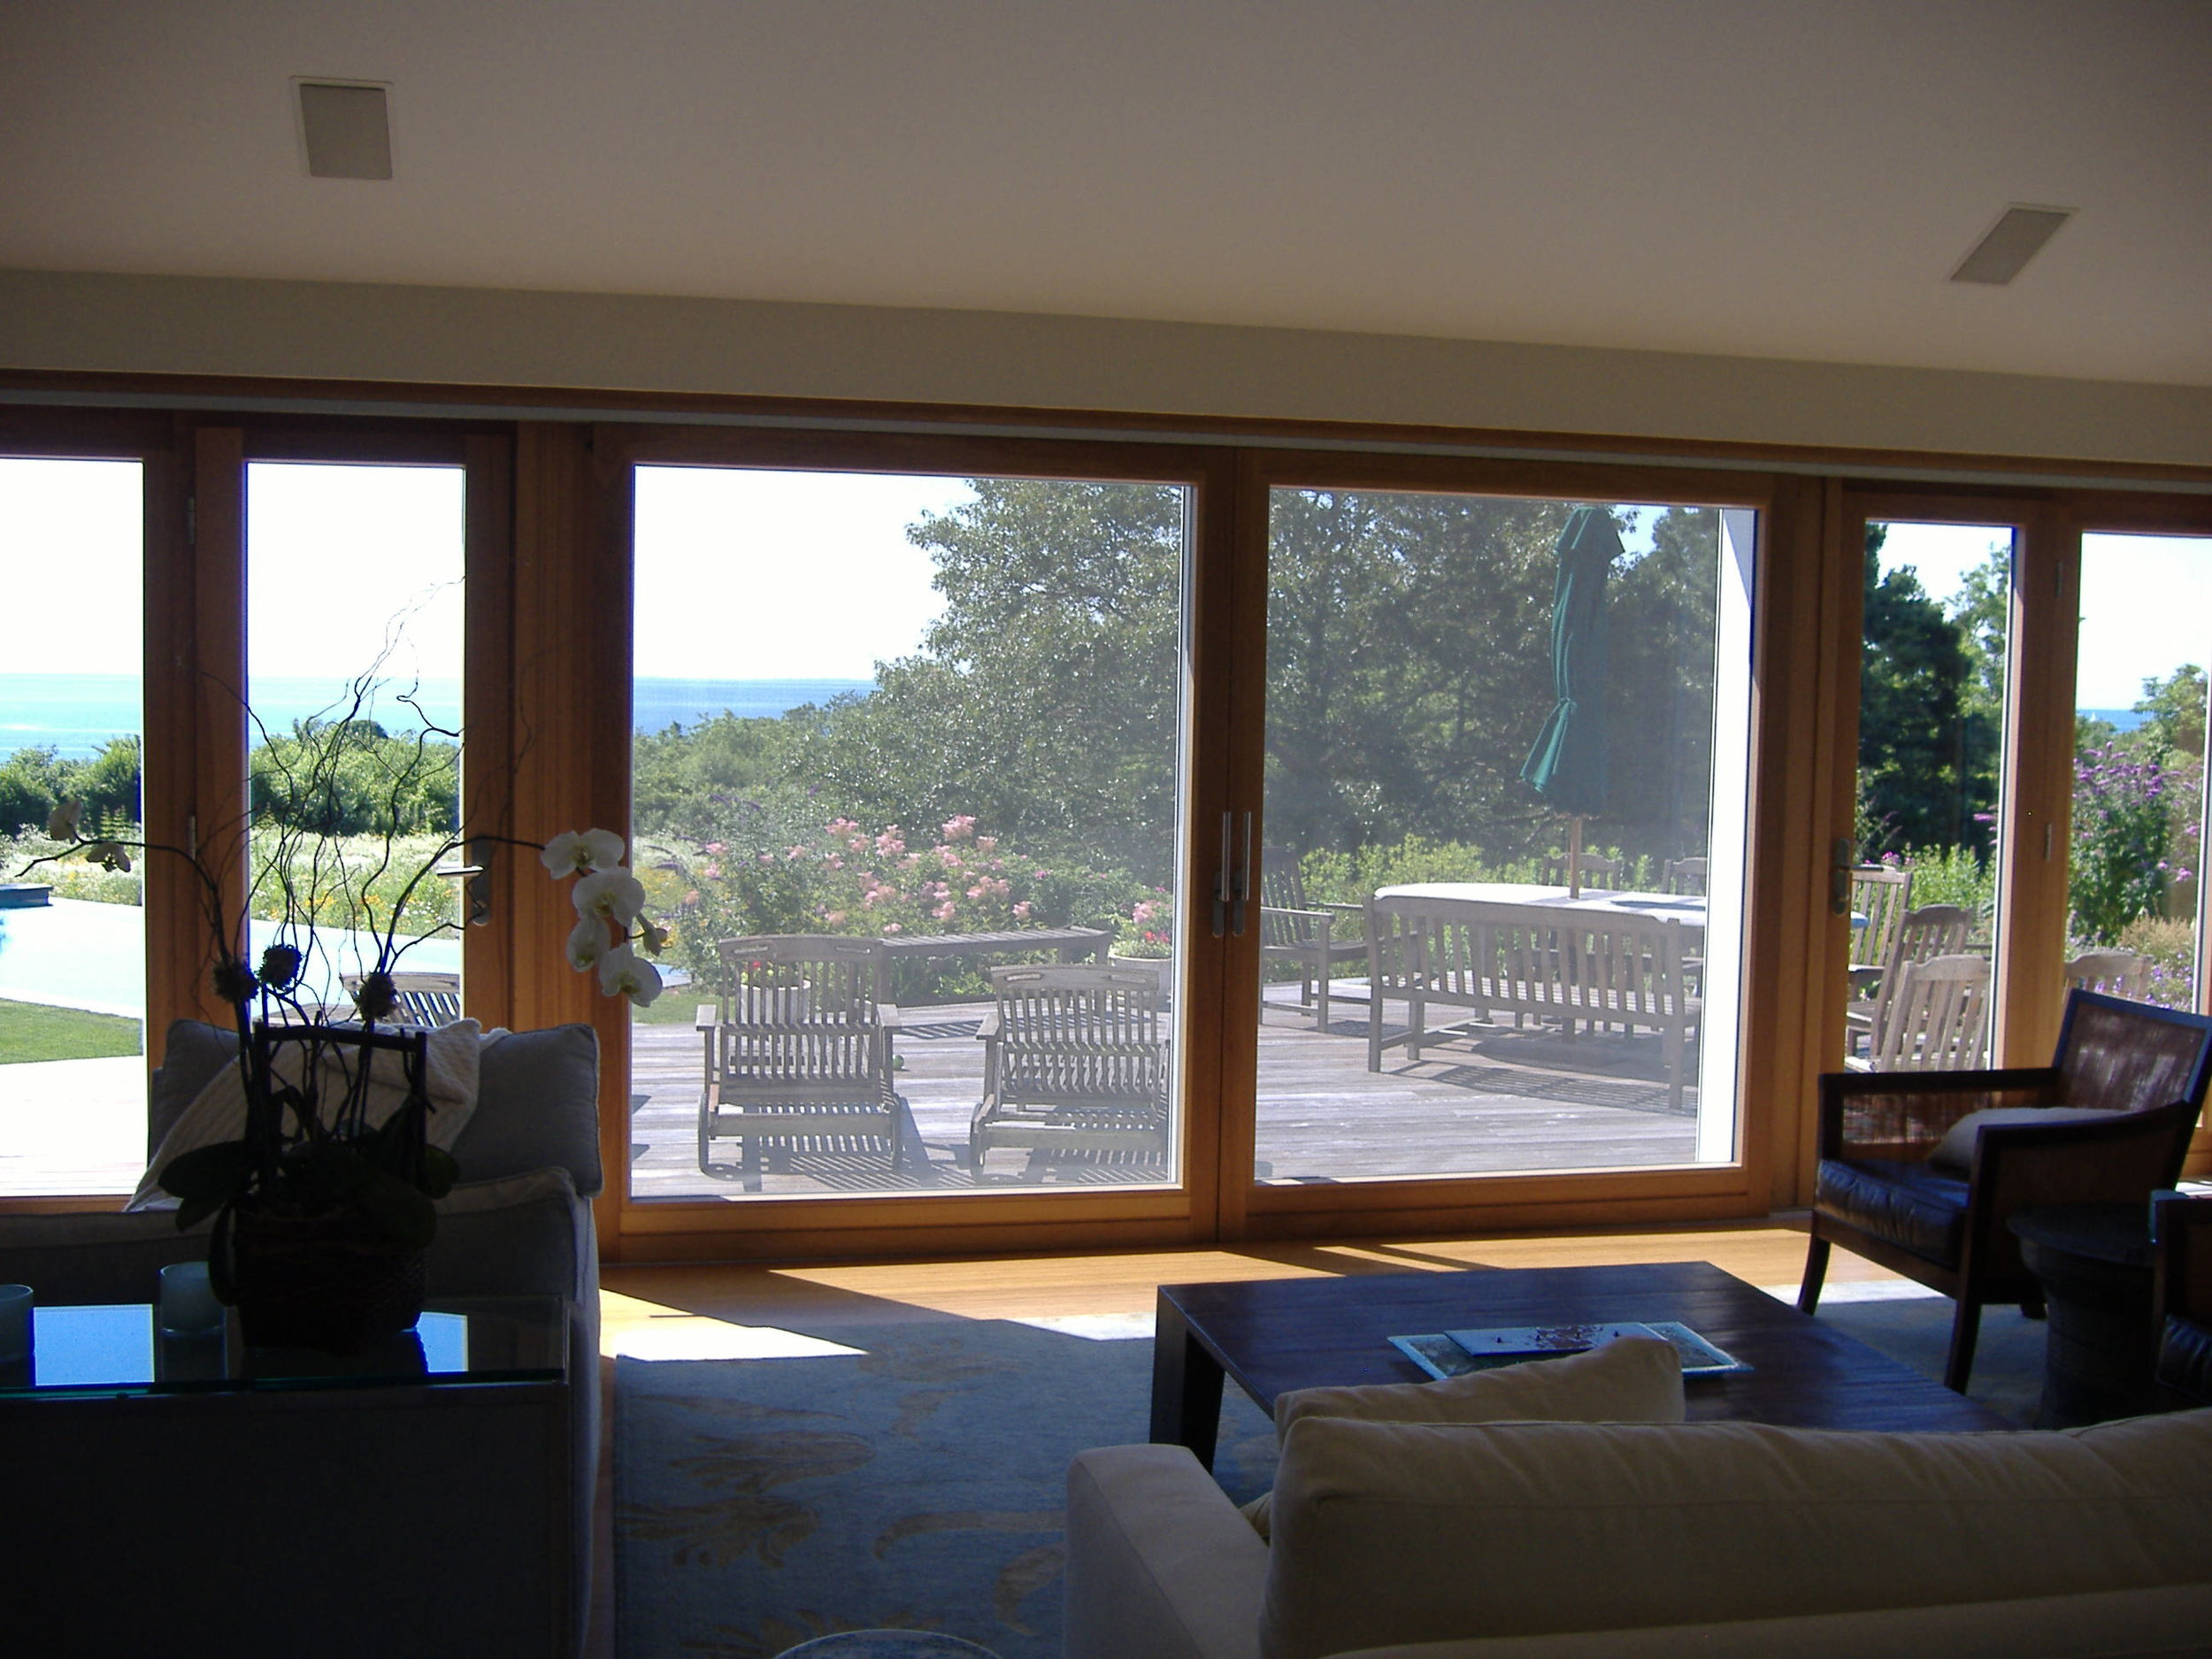 24 foot long Lift and Slide Door with French Doors as Sides